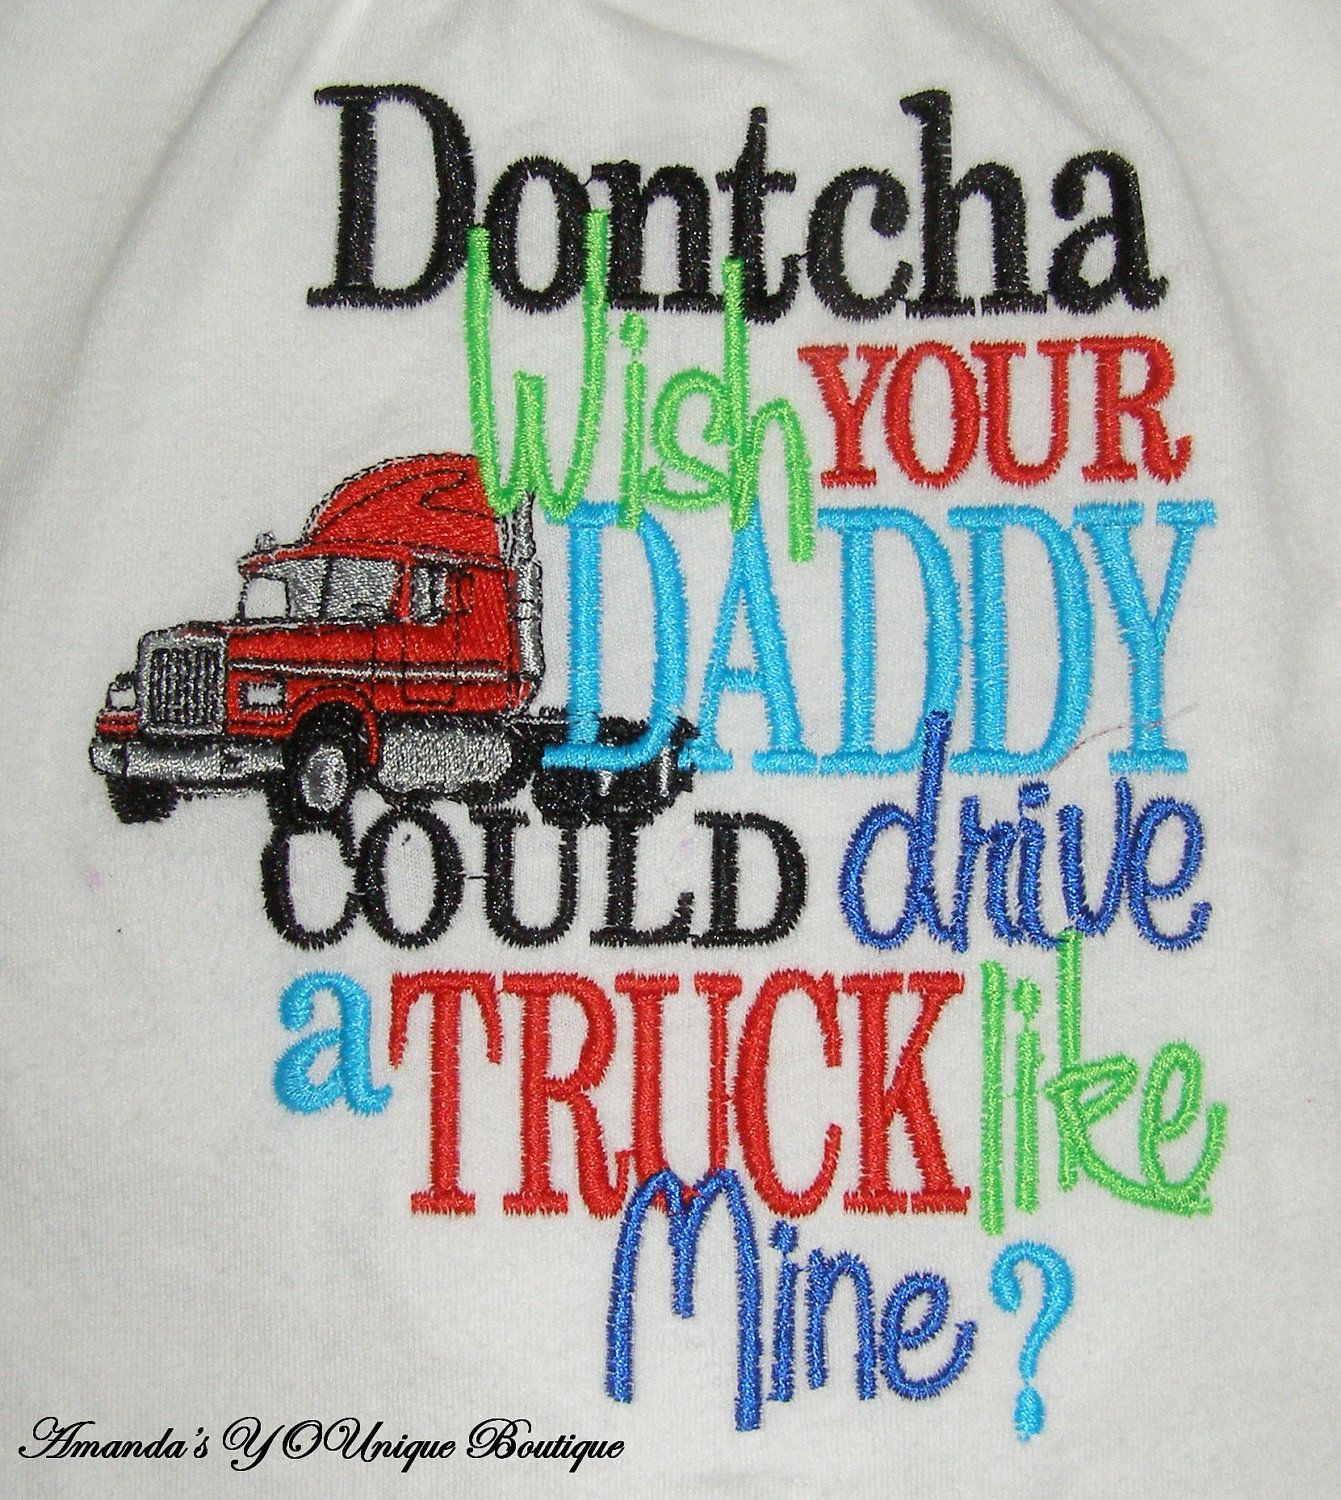 Trucker Quotes Dontcha Wish Your Daddy Could Drive A Truck Like Mine Embroidered